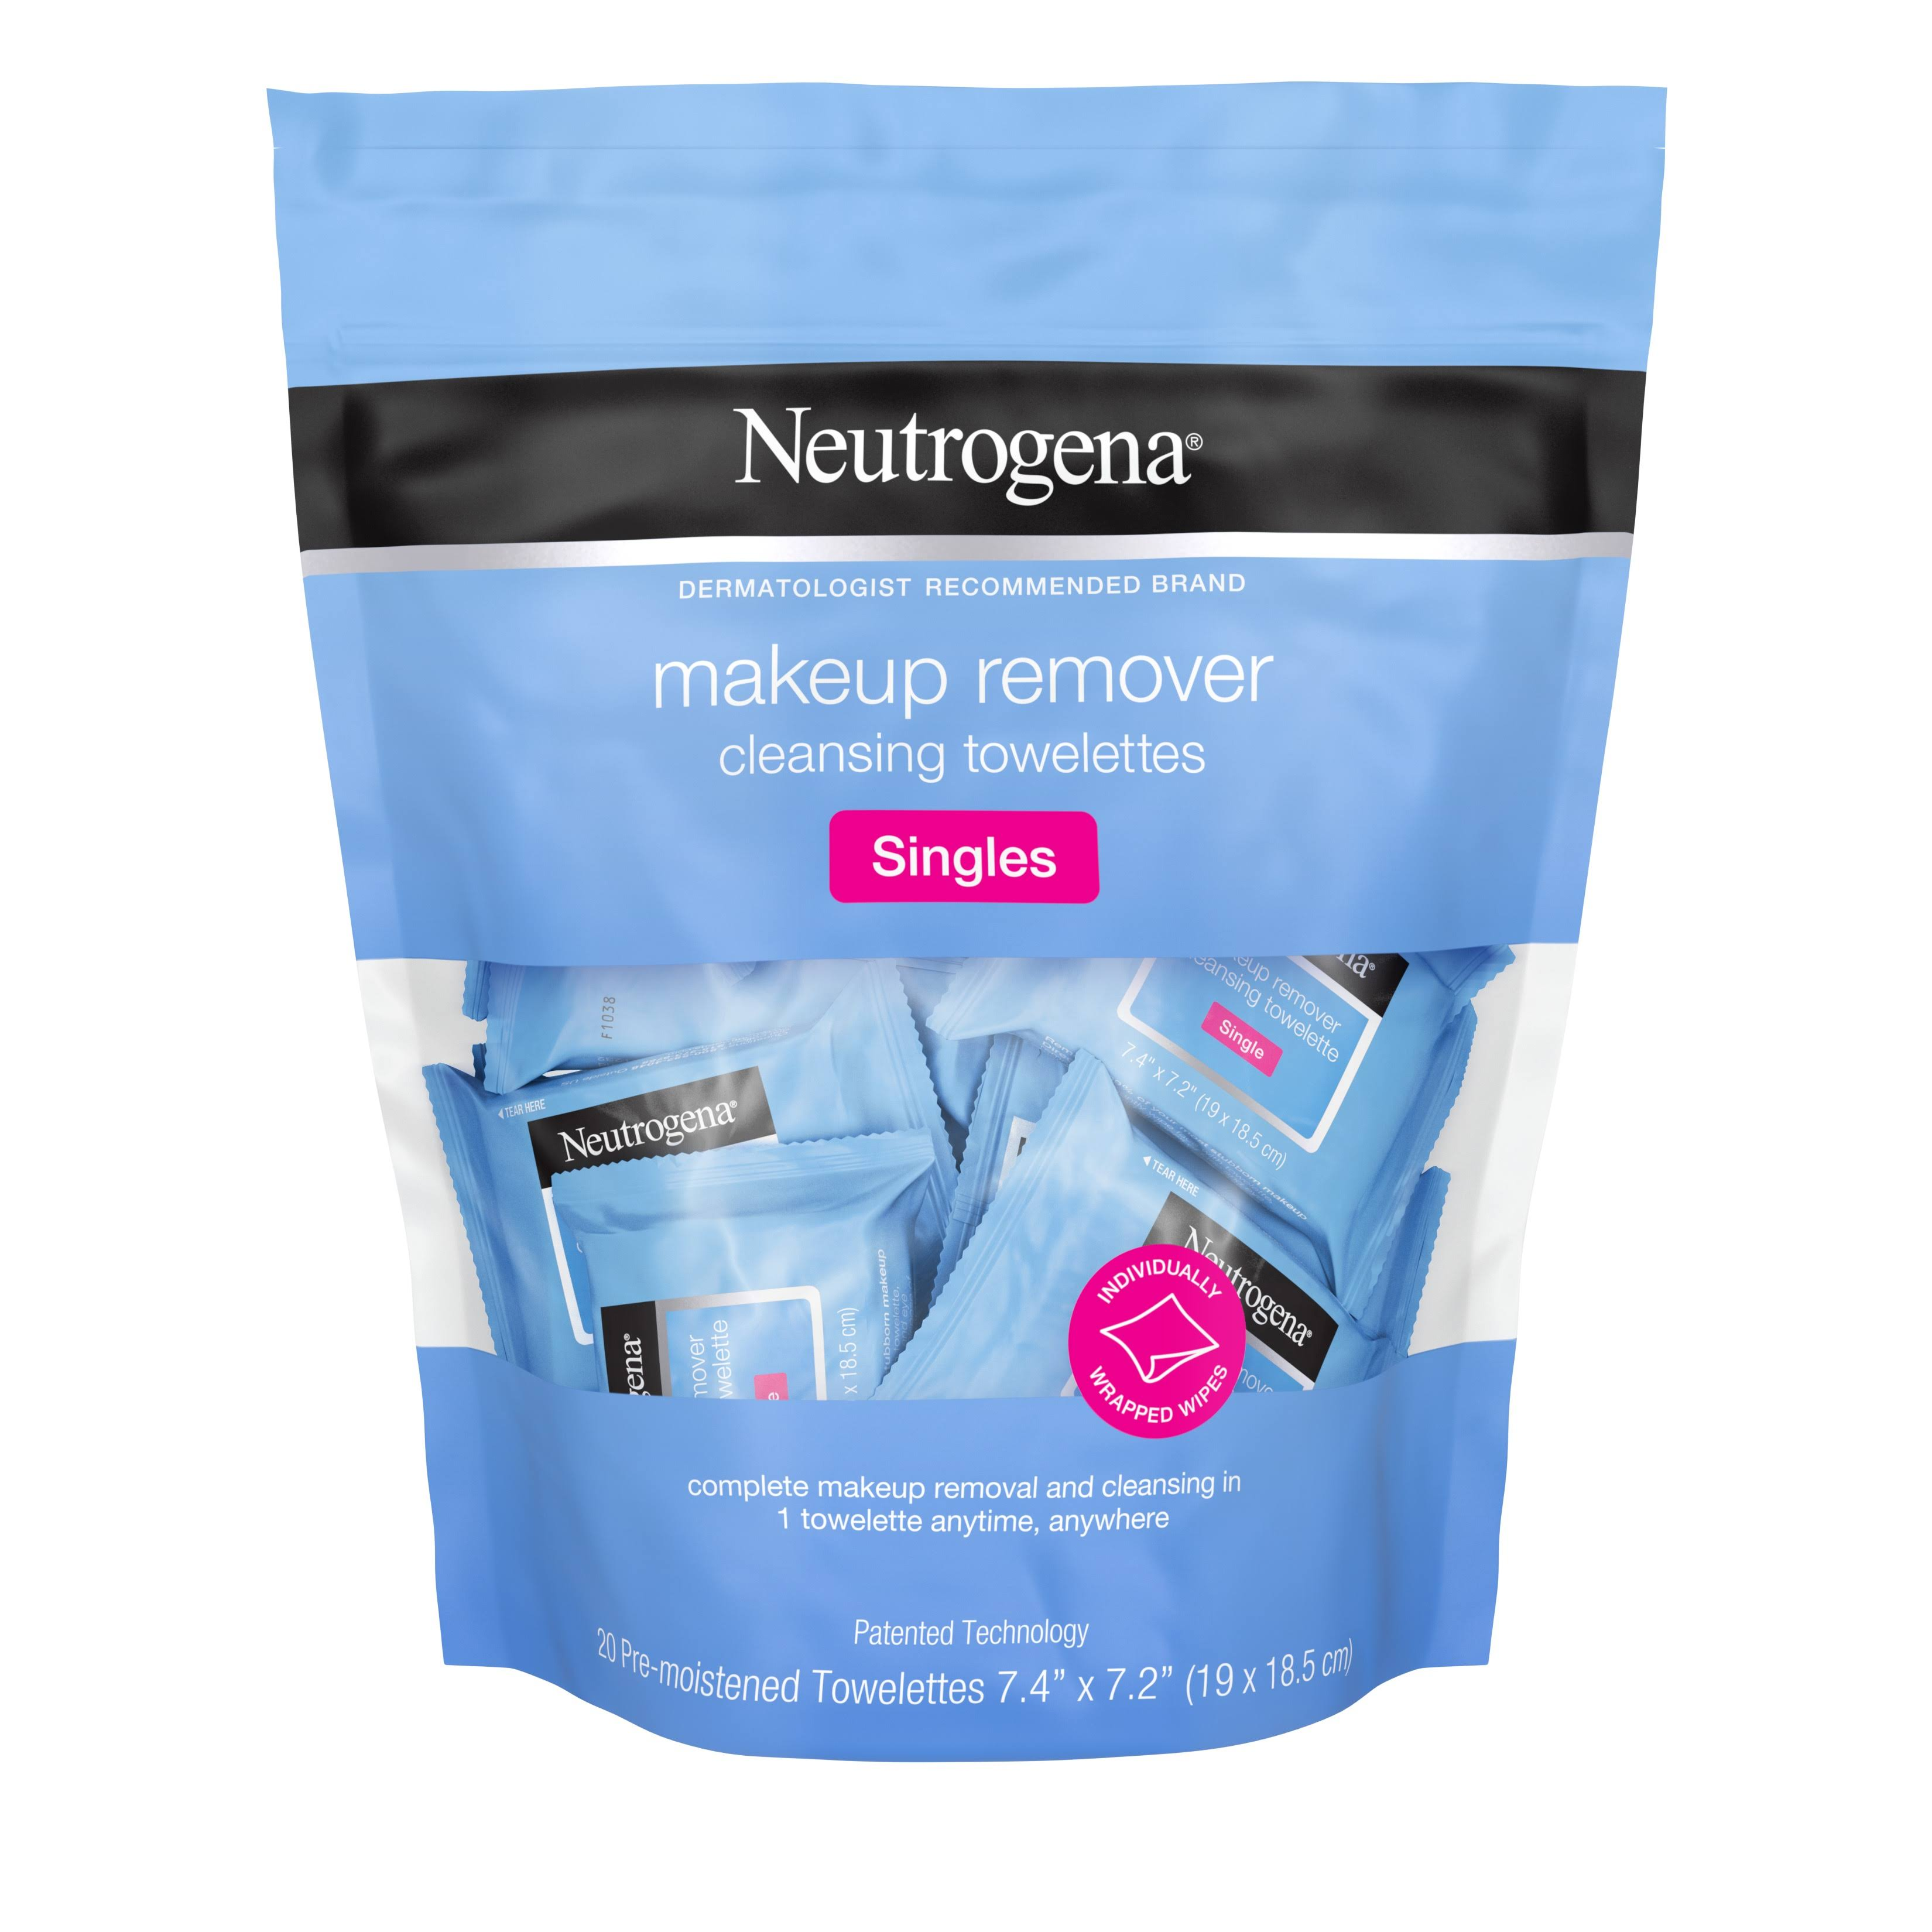 Neutrogena Cleansing Towelettes, Makeup Remover, Singles - 20 towelettes